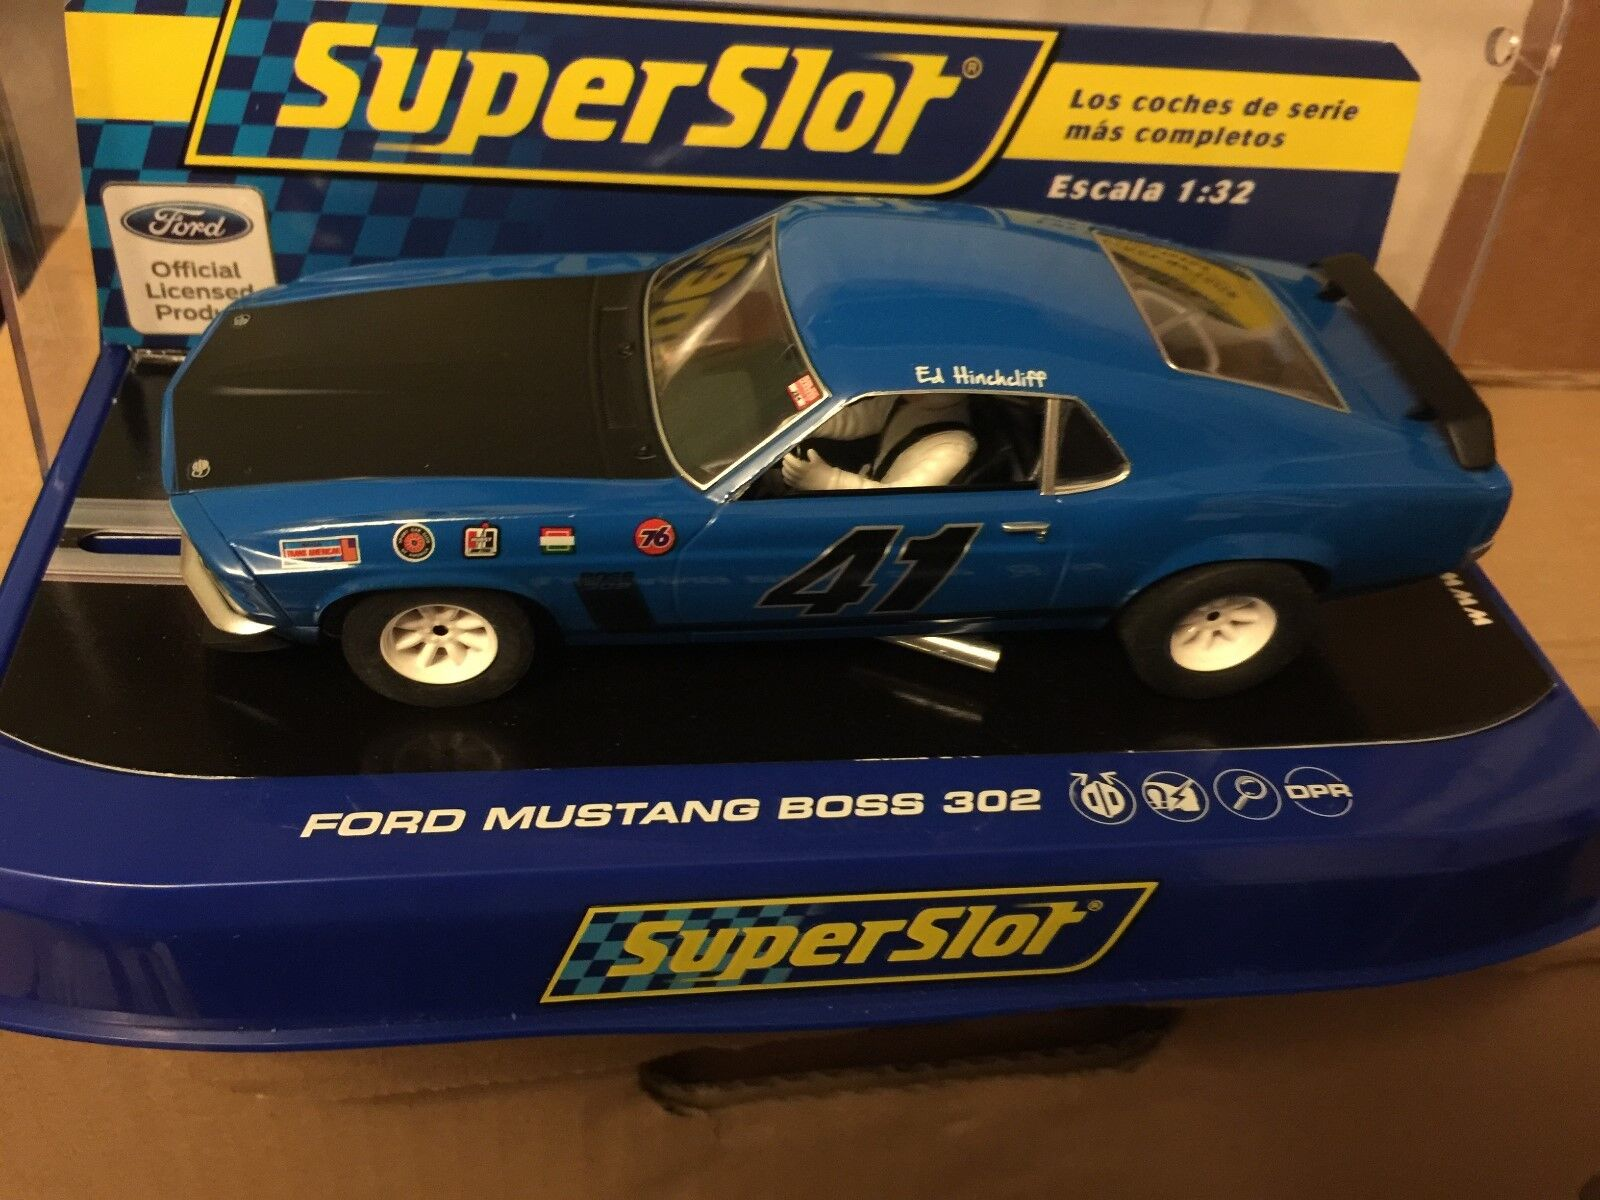 SCALEXTRIC C3613 FORD MUSTANG BOSS BOSS BOSS 302 1969 ED HINCHCLIFF MINT BOXED 70bd1f